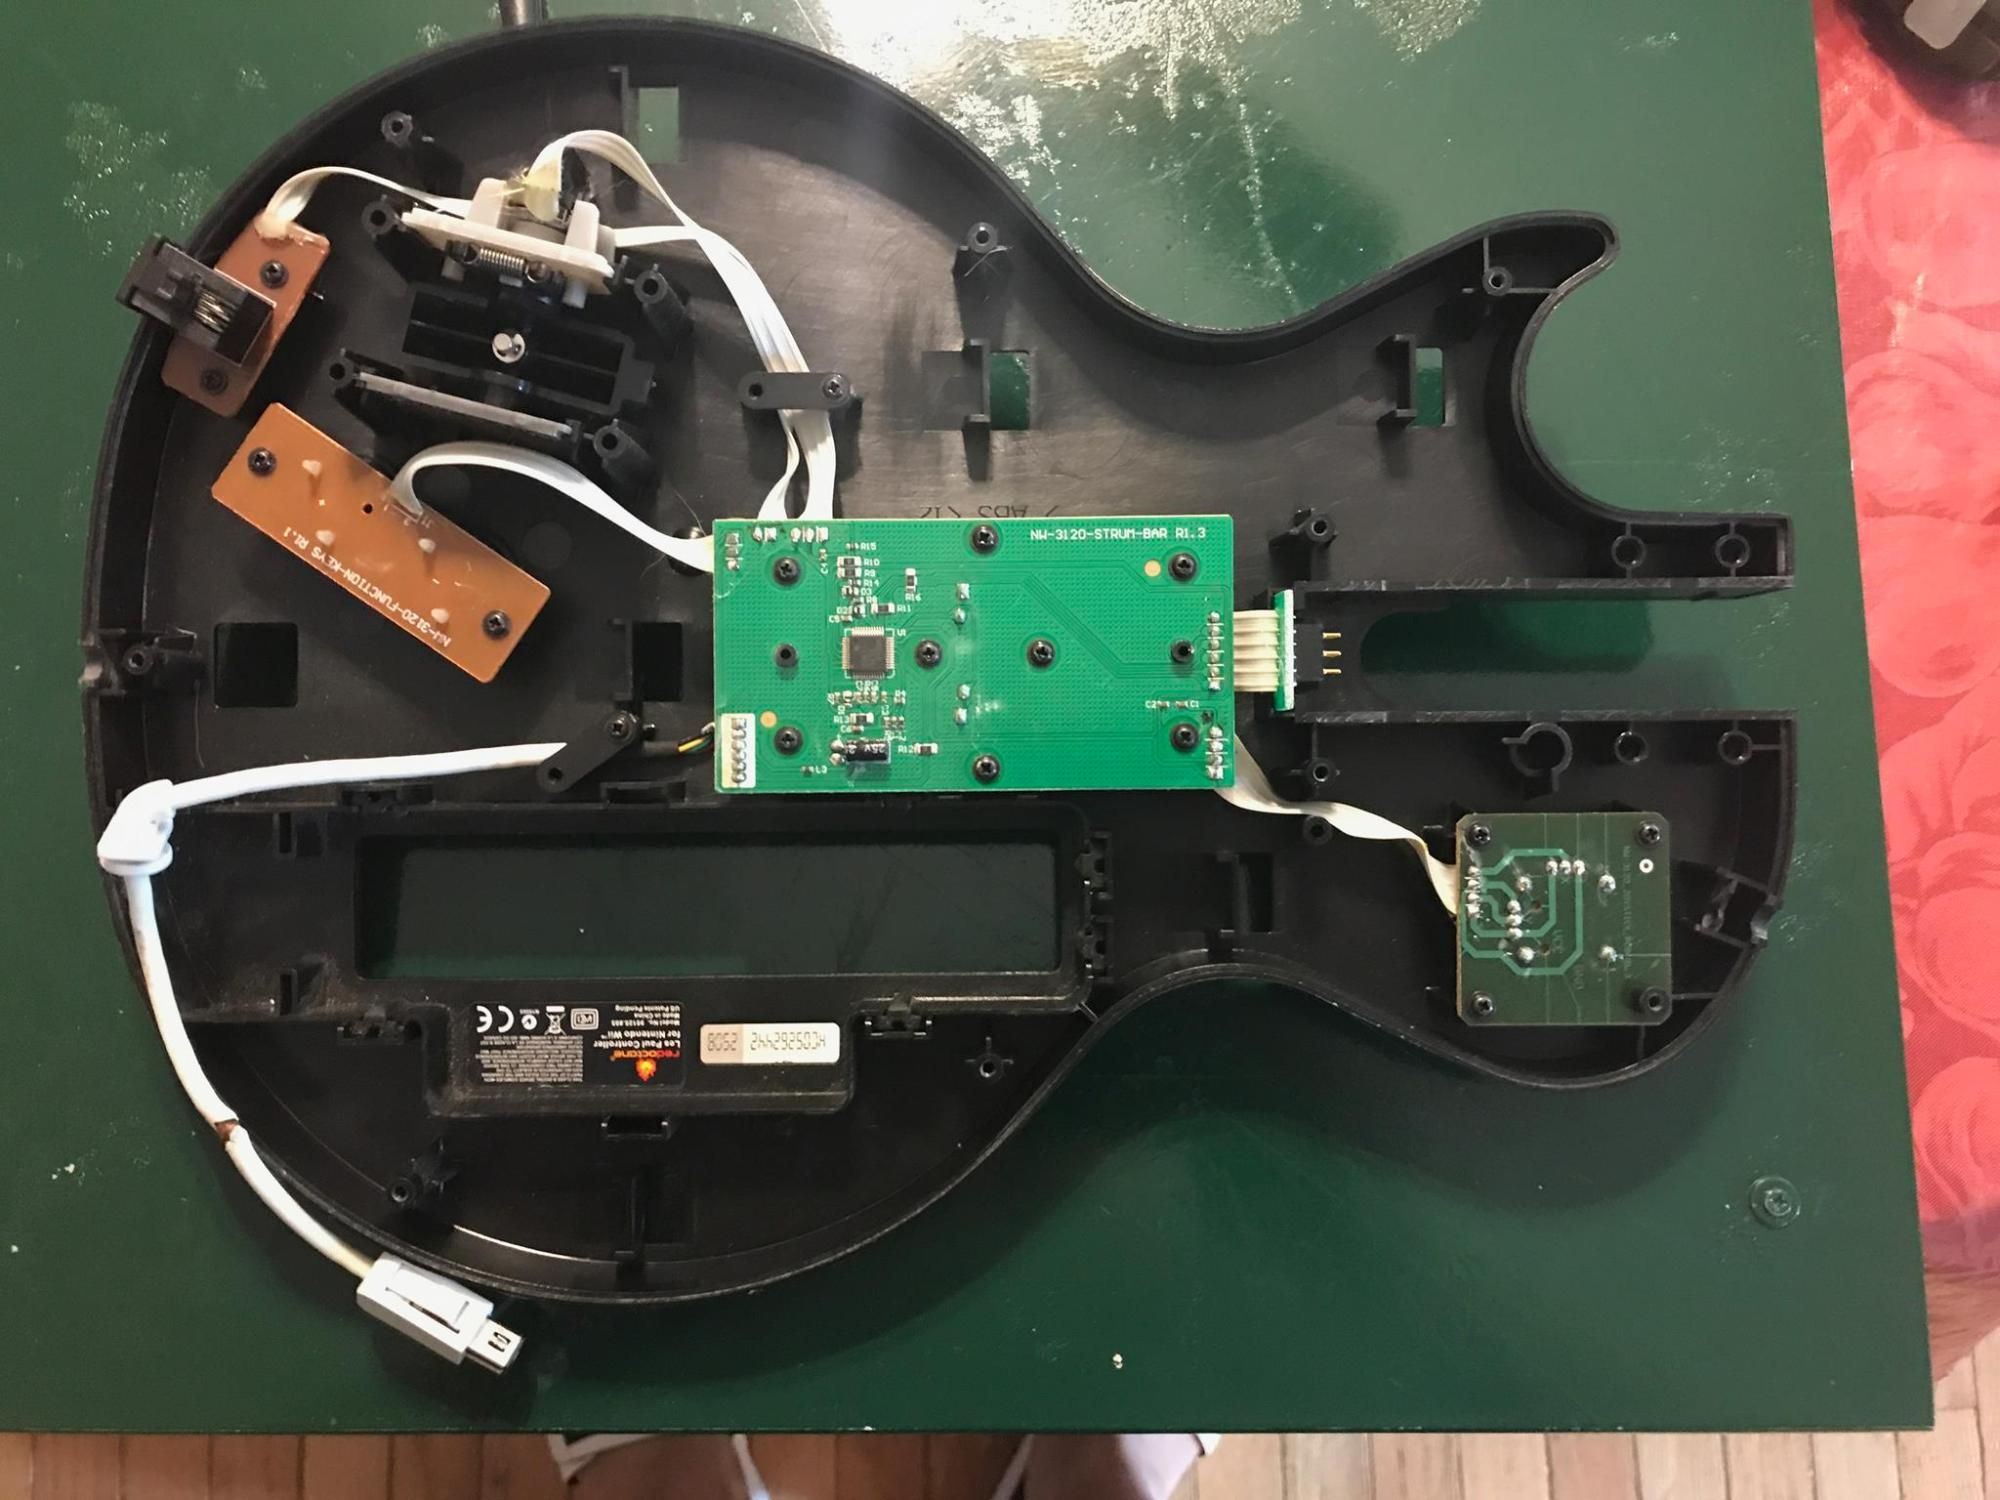 hight resolution of how to repair guitar hero guitar wii edition webcommand netre install the screws you removed and put the entire guitar hero guitar back together give